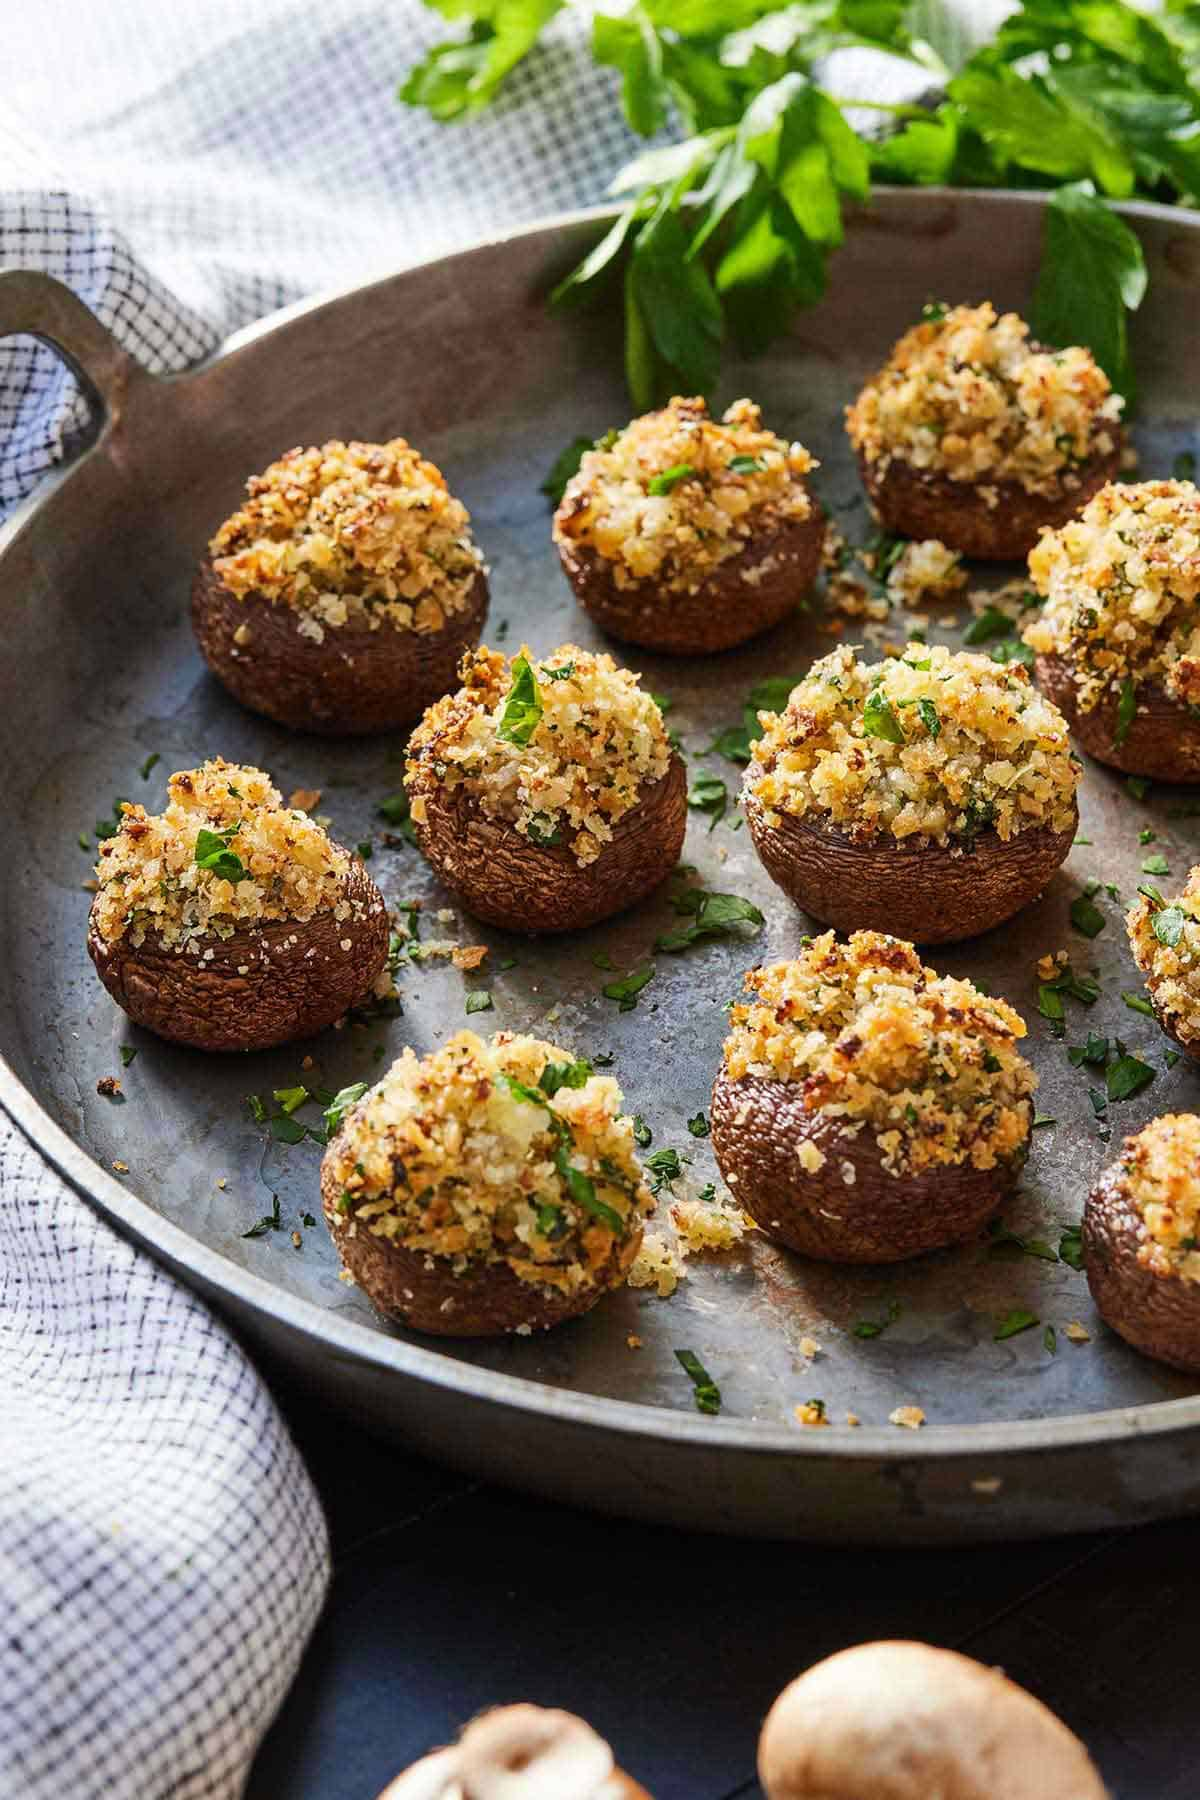 A platter of mushrooms that are stuffed with onions, garlic, breadcrumbs, cheese, and herbs.